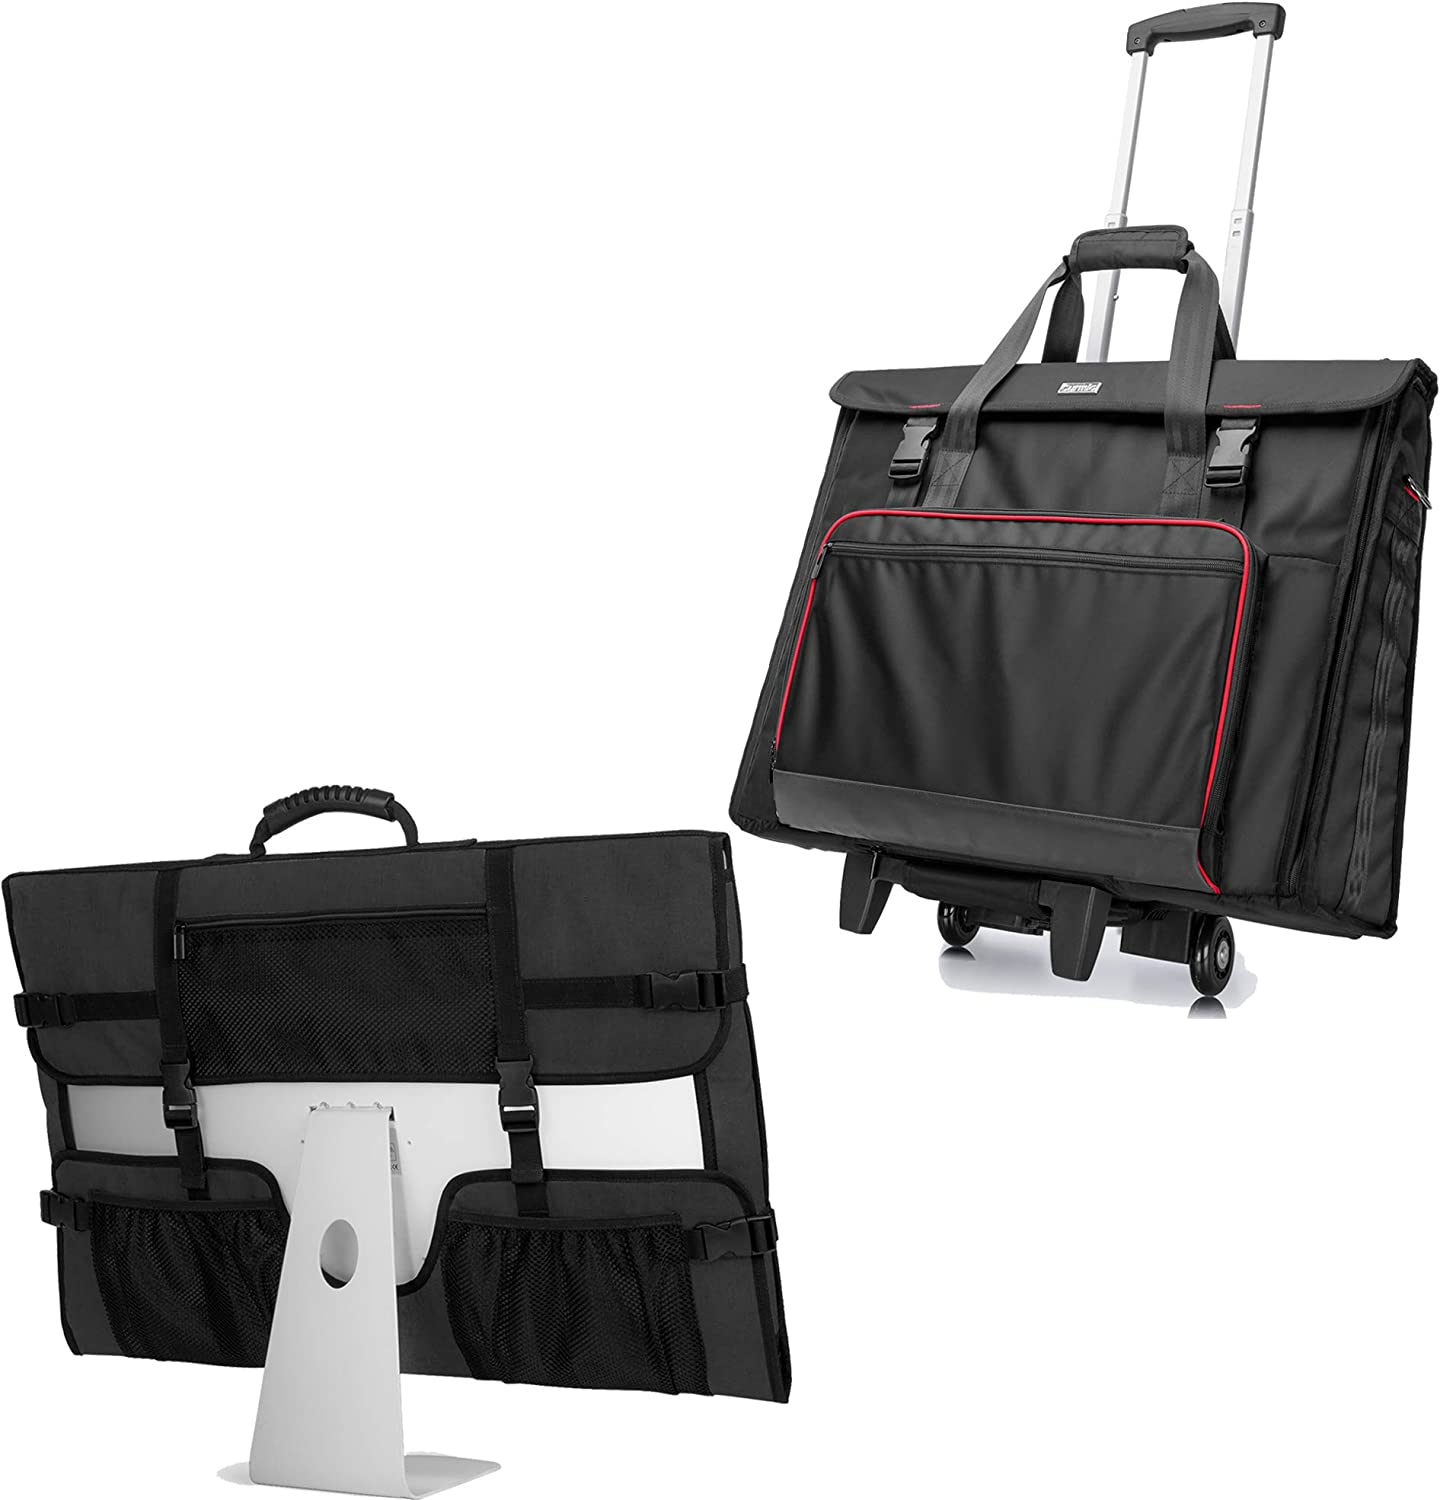 CURMIO Tote Bag with Rubber Handle, Rolling Carrying Bag with Wheels Compatible with Apple iMac 21.5 inch Desktop Computer, Black, Patented Design